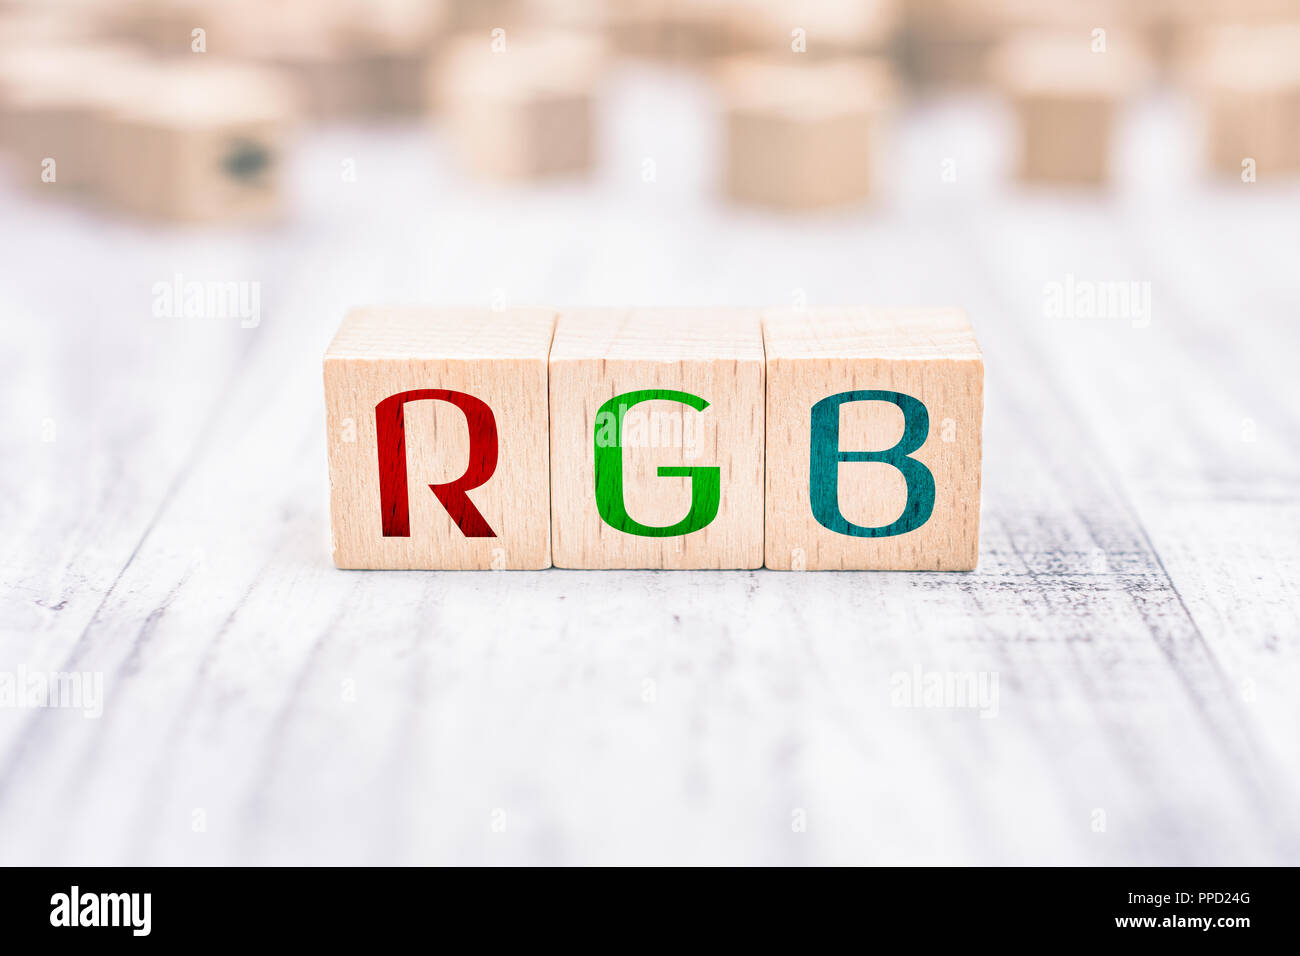 The Abbreviation RGB Formed By Wooden Blocks On A White Table - Stock Image